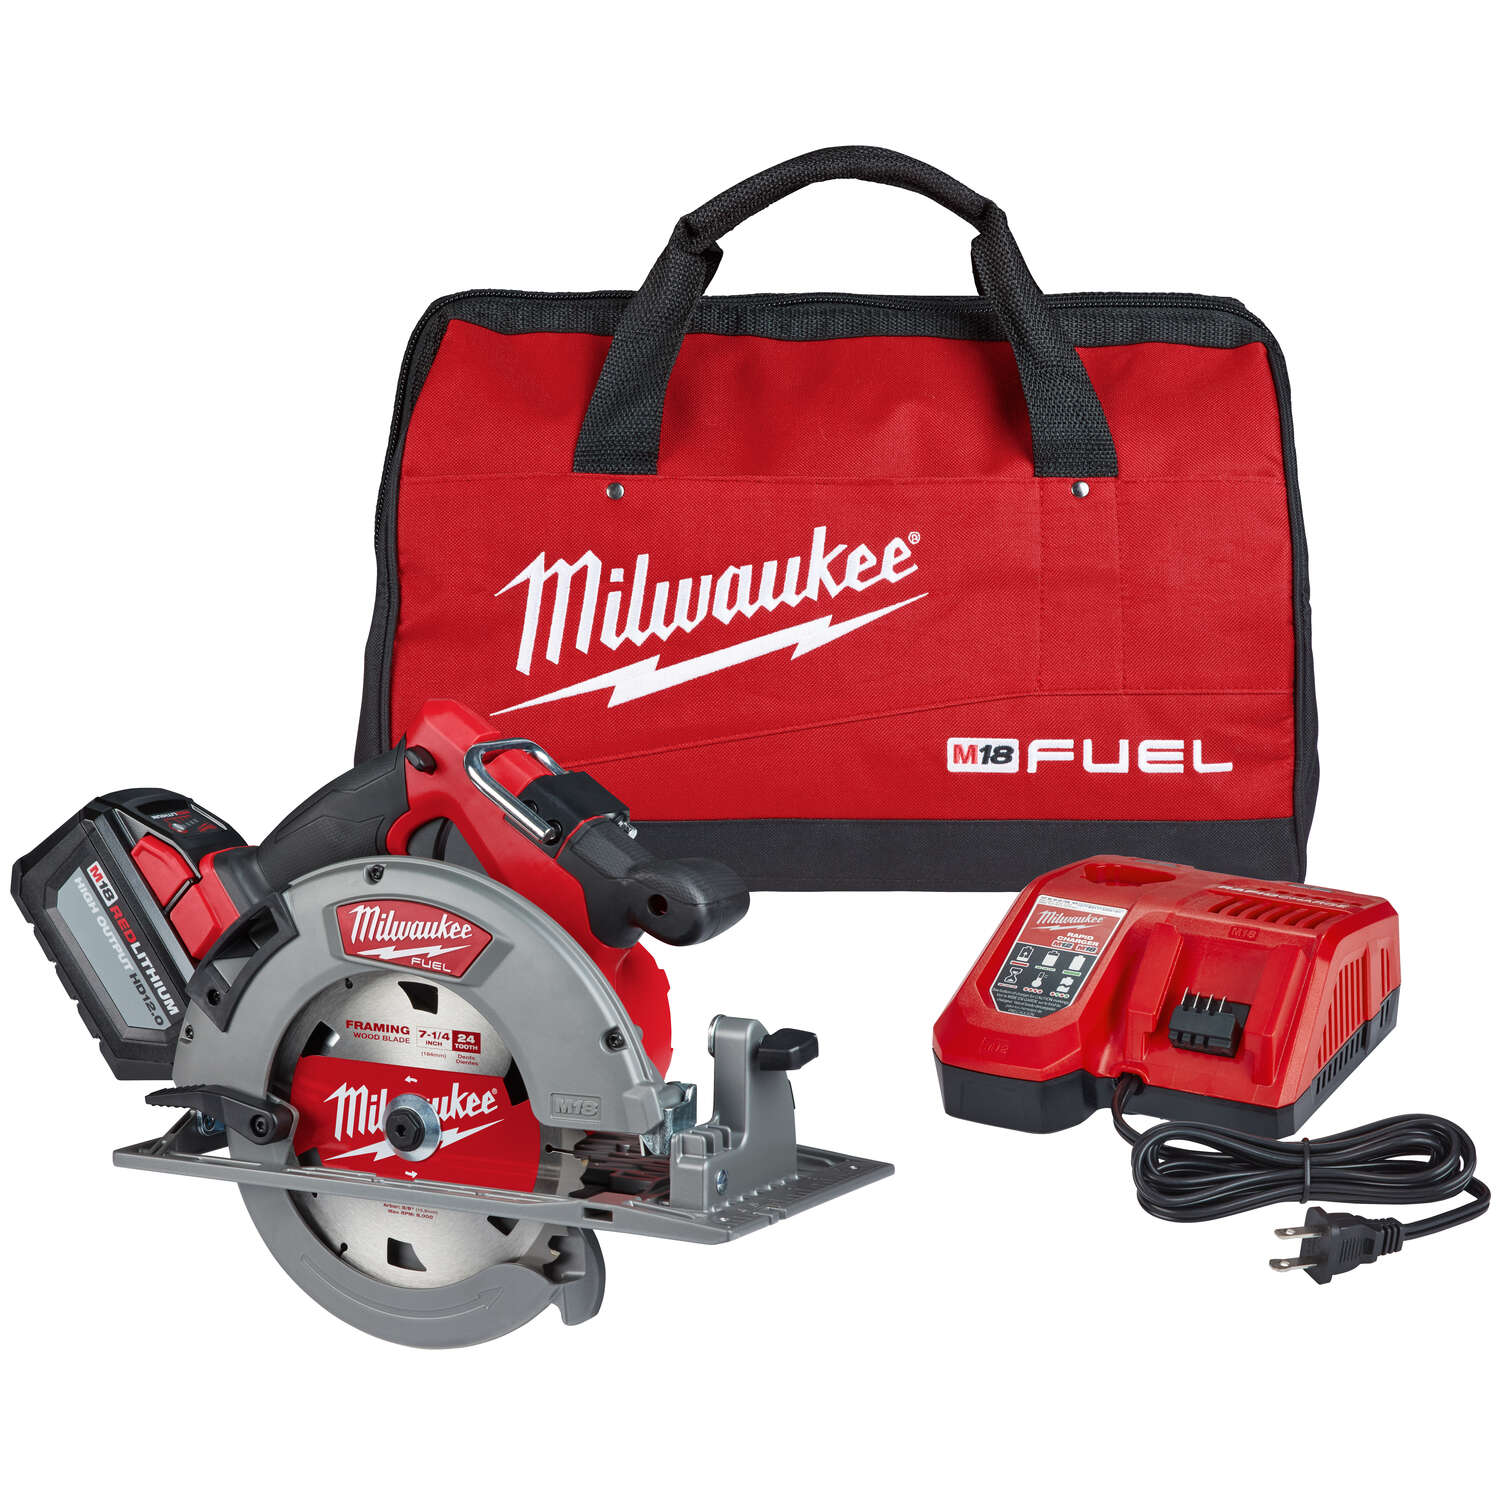 Milwaukee M18 FUEL 18 volt 7-1/4 in. Cordless Brushless Circular Saw Kit (Battery & Charger)